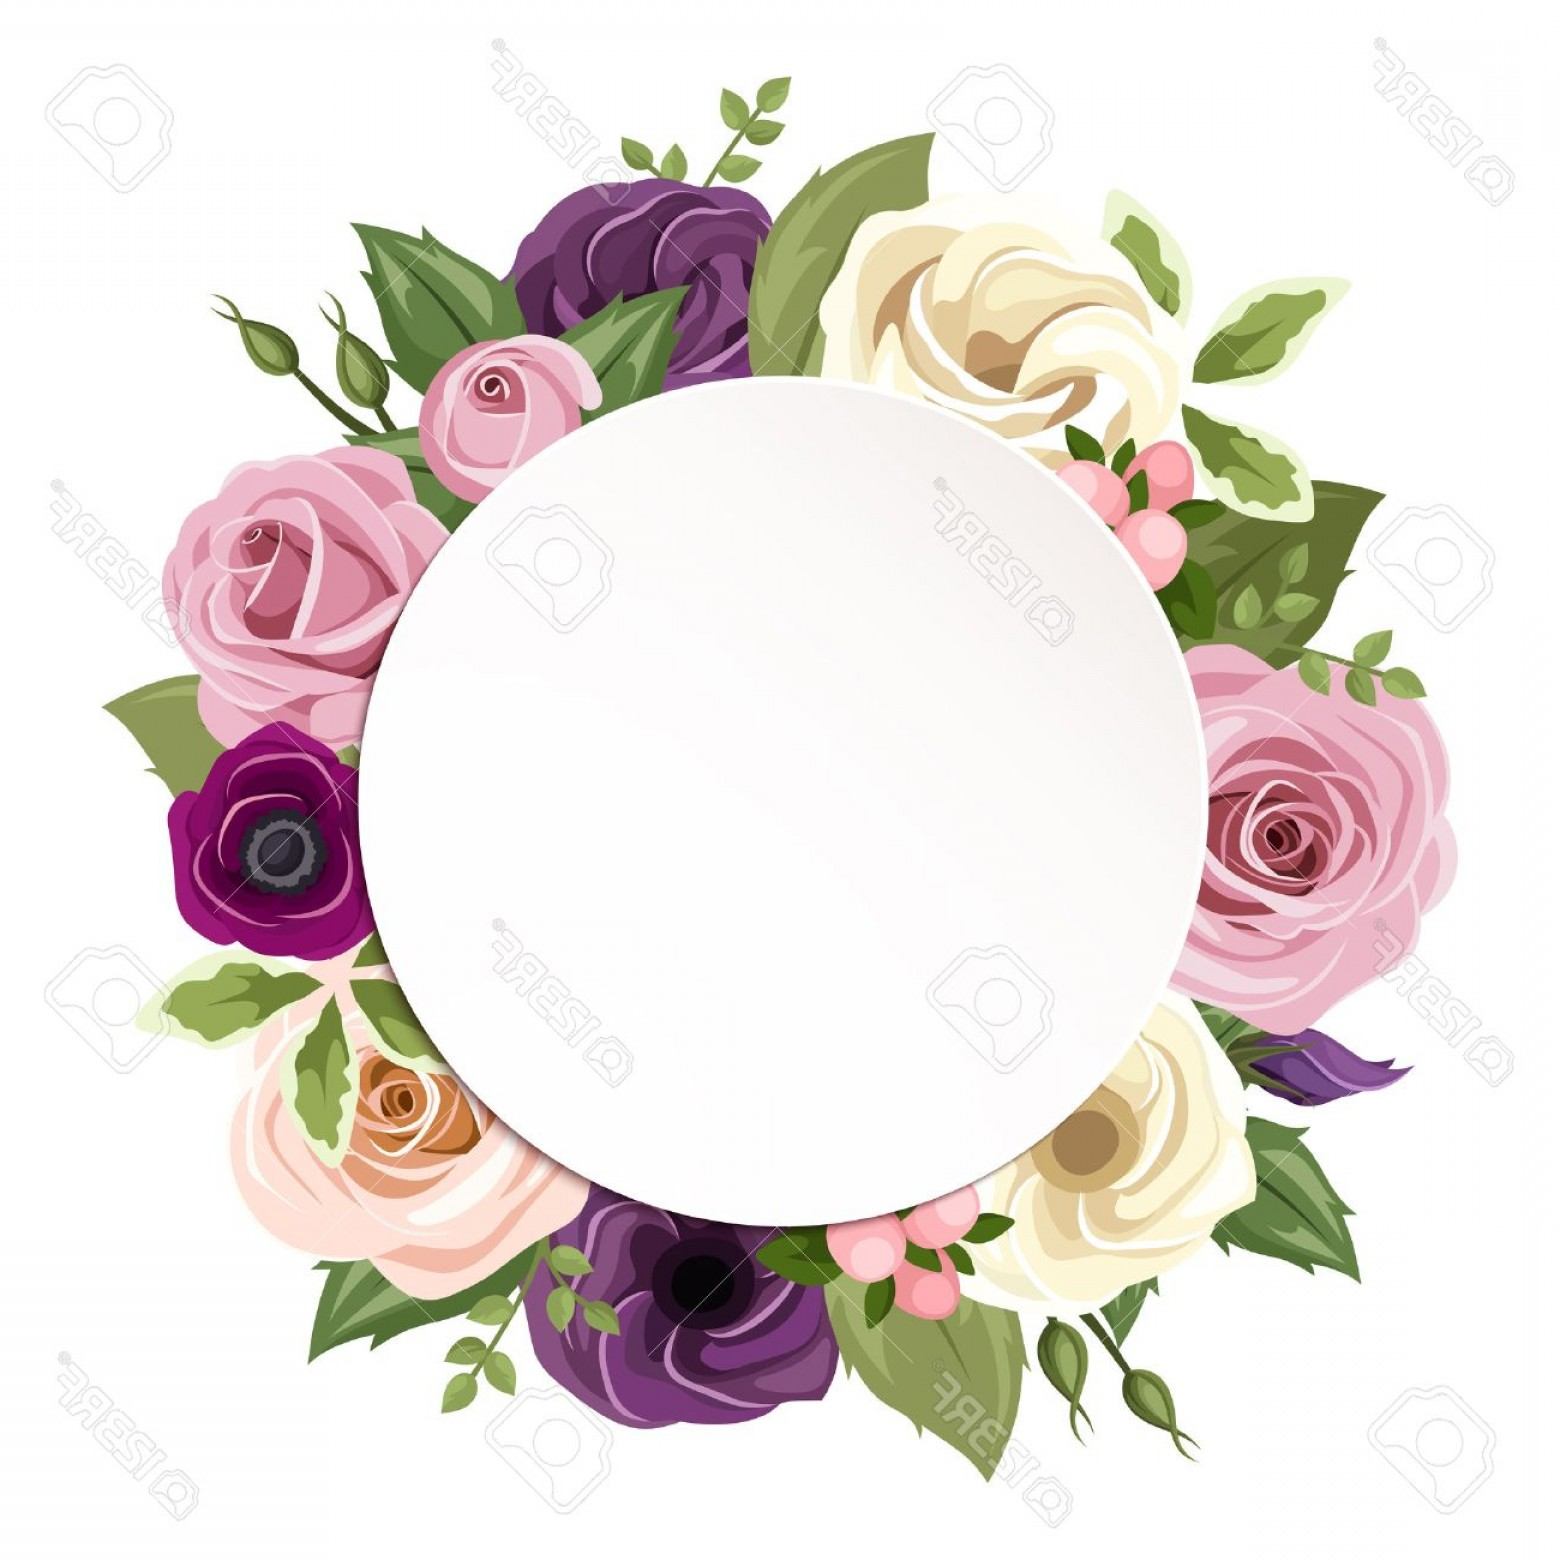 Purple Green And White Vector: Photostock Vector Vector Circle Background With Pink Purple Orange And White Roses Lisianthus And Anemone Flowers And